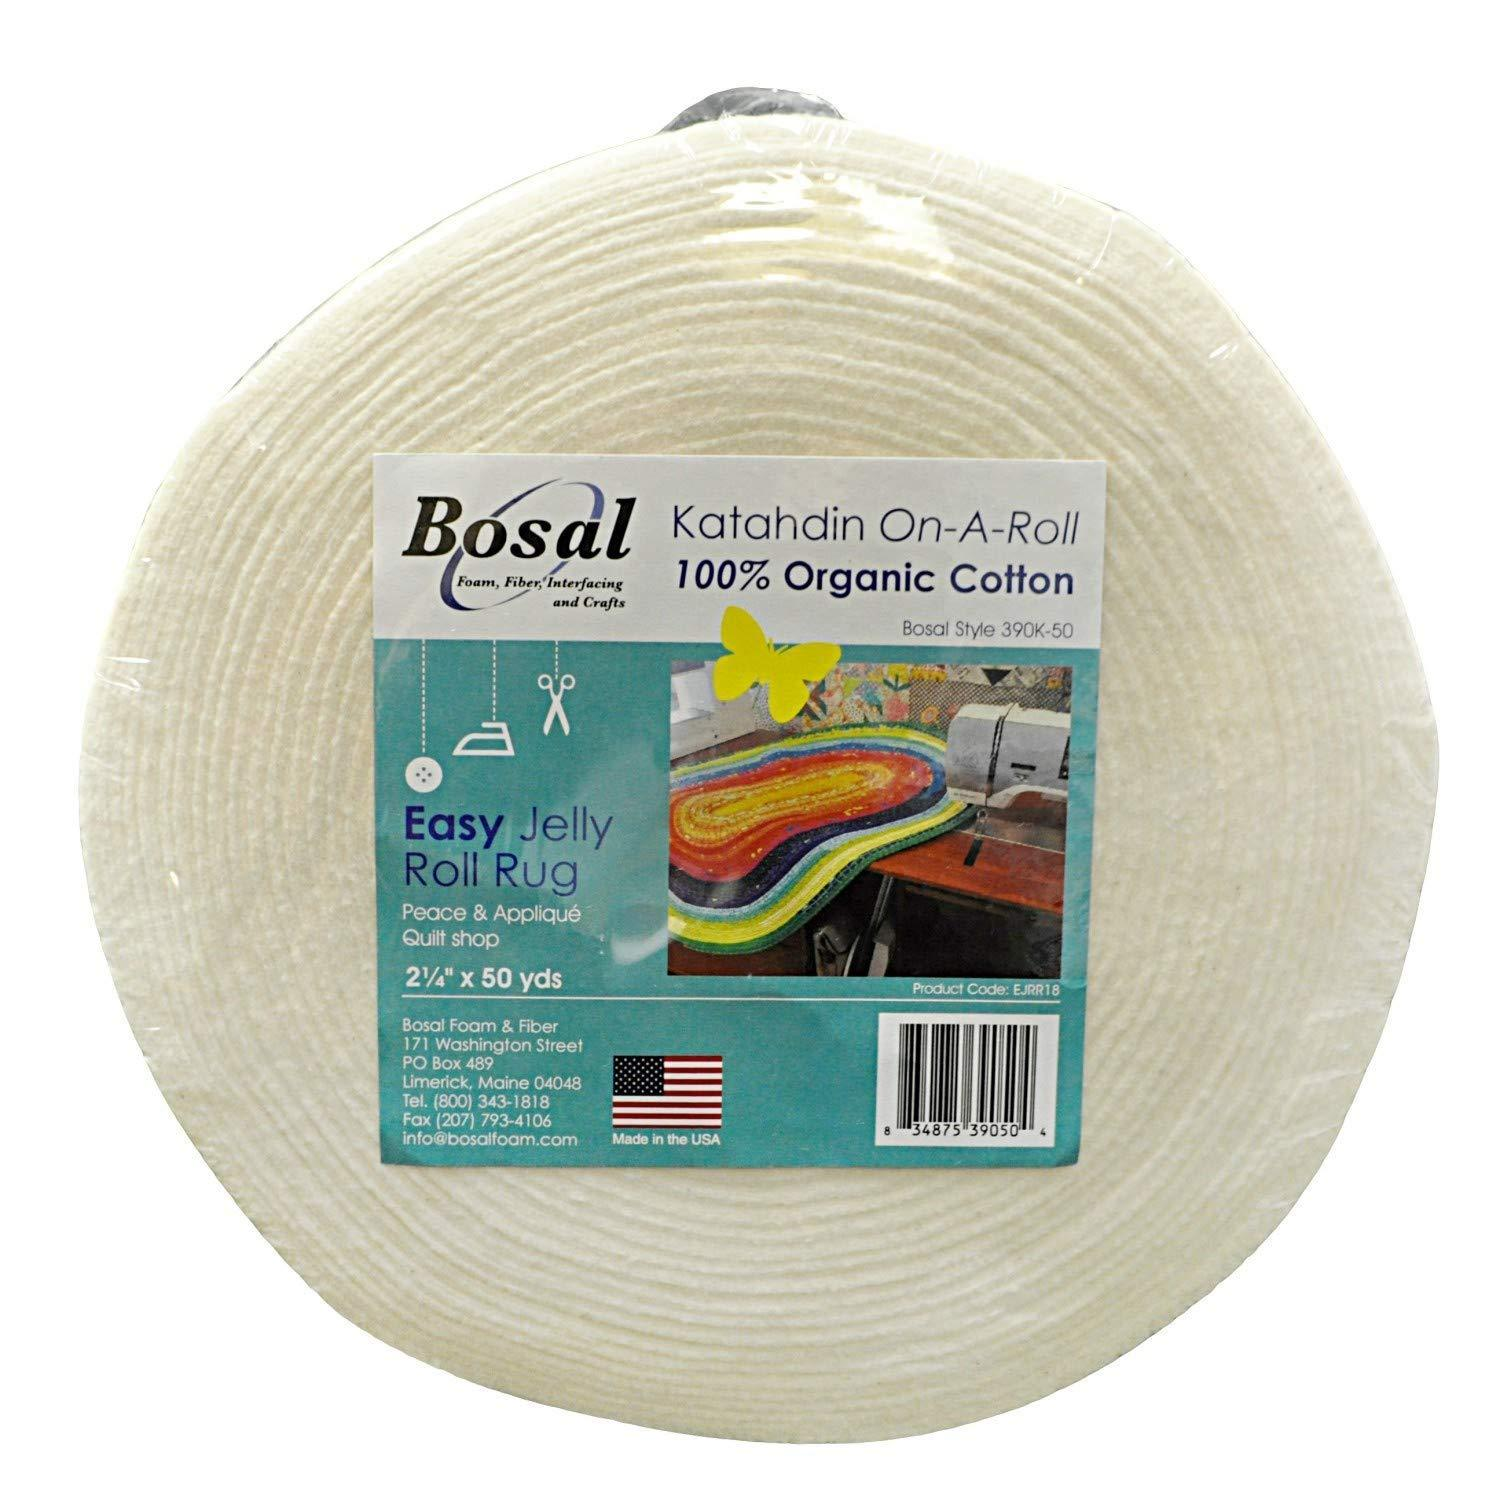 Bosal Katahdin On-A-Roll Organic Cotton Batting 2-1/4 inches by 50 Yards